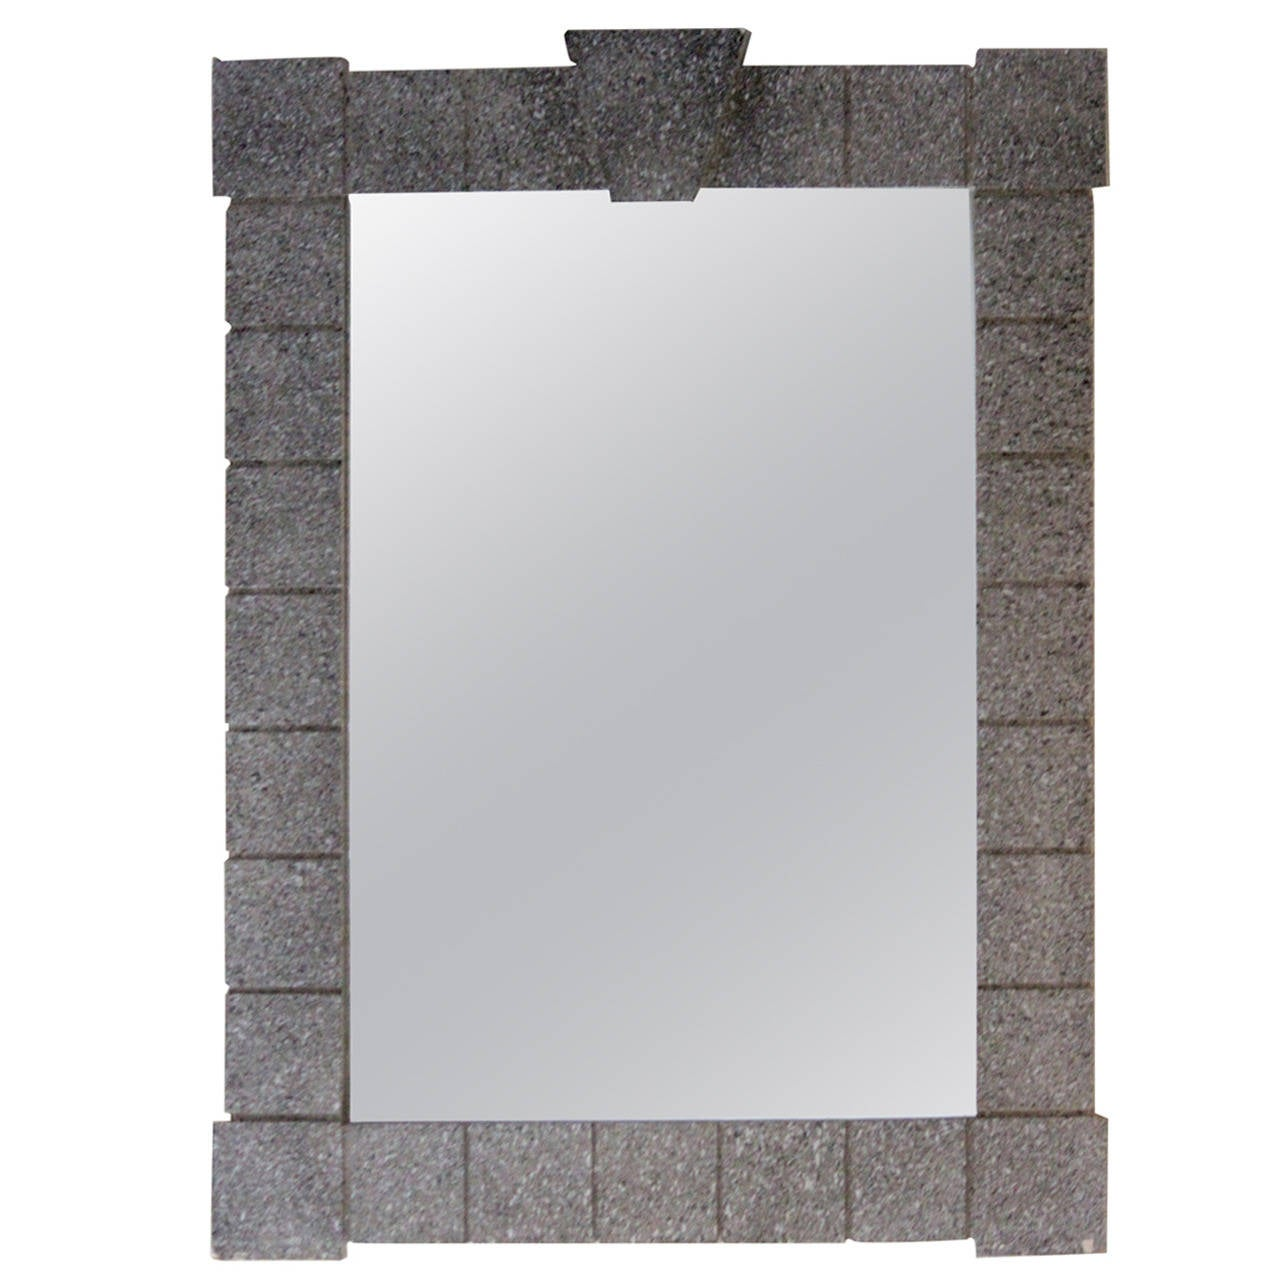 1970s Mirror Architectural Delineated Faux Stone